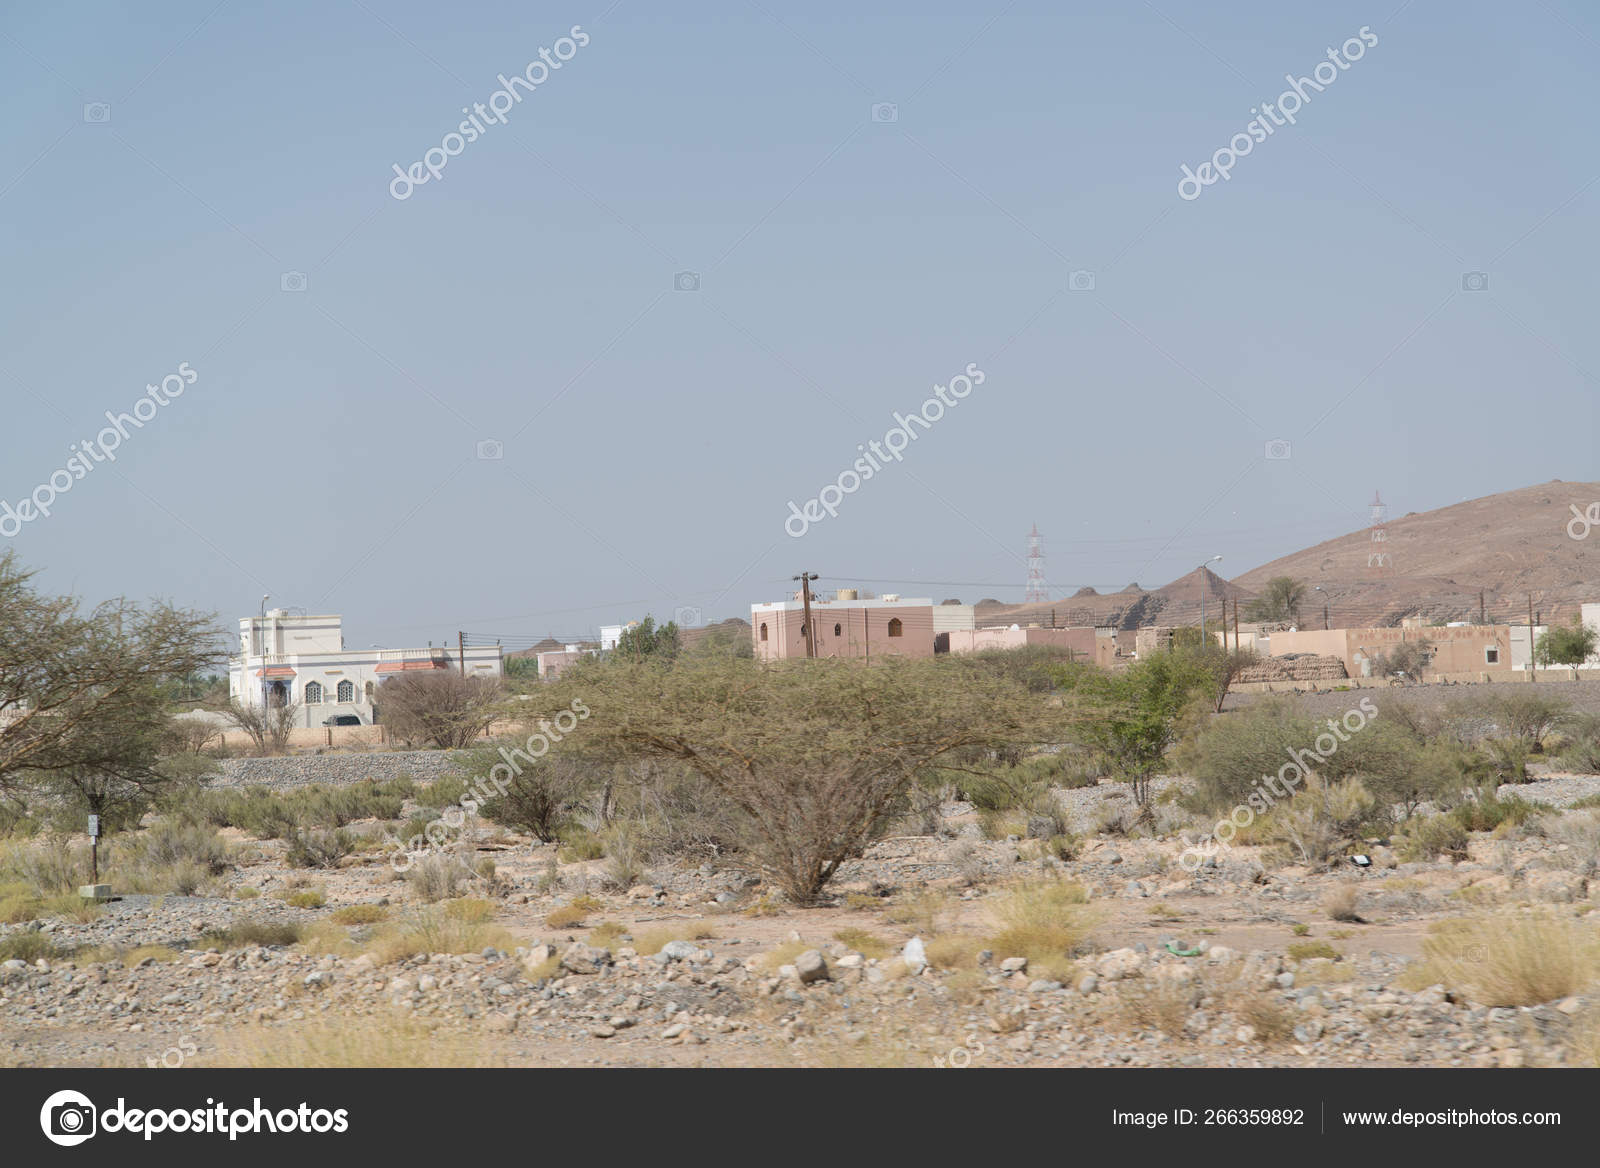 Buildings Situated Desert Country Oman Capital City Muscat